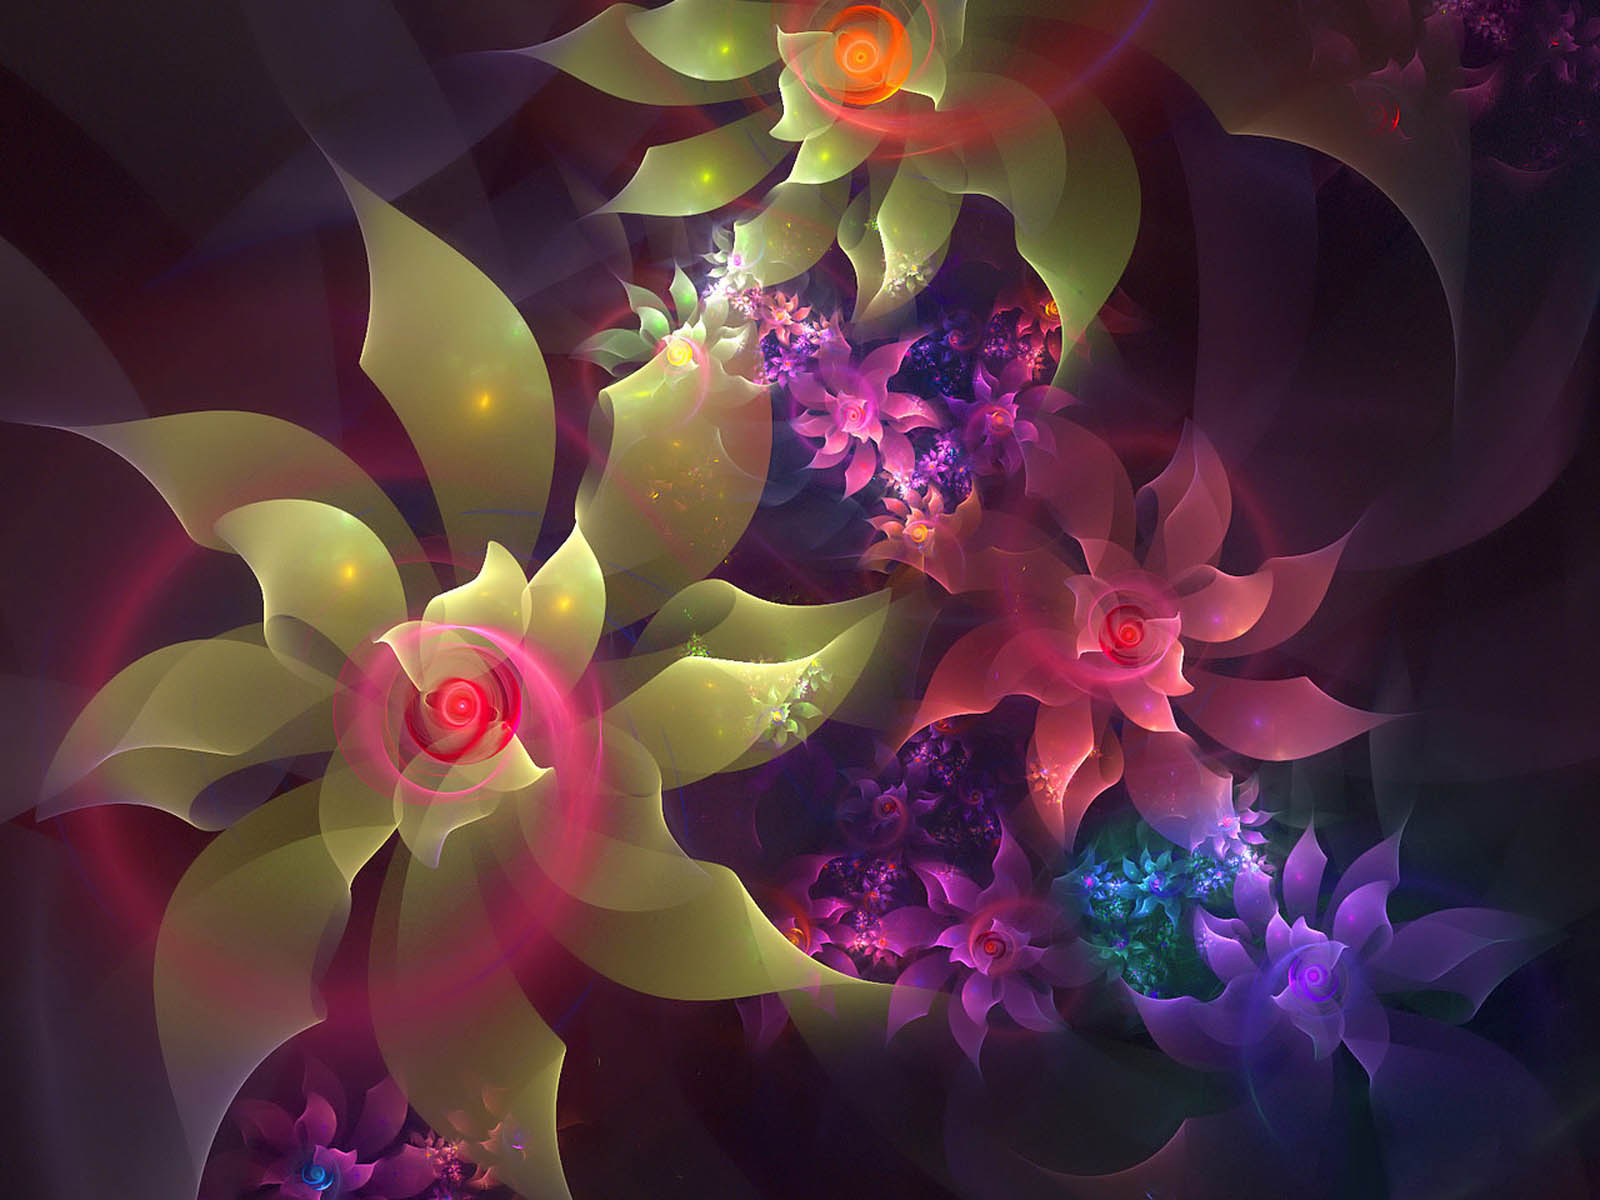 art flowers background wallpaper - photo #27